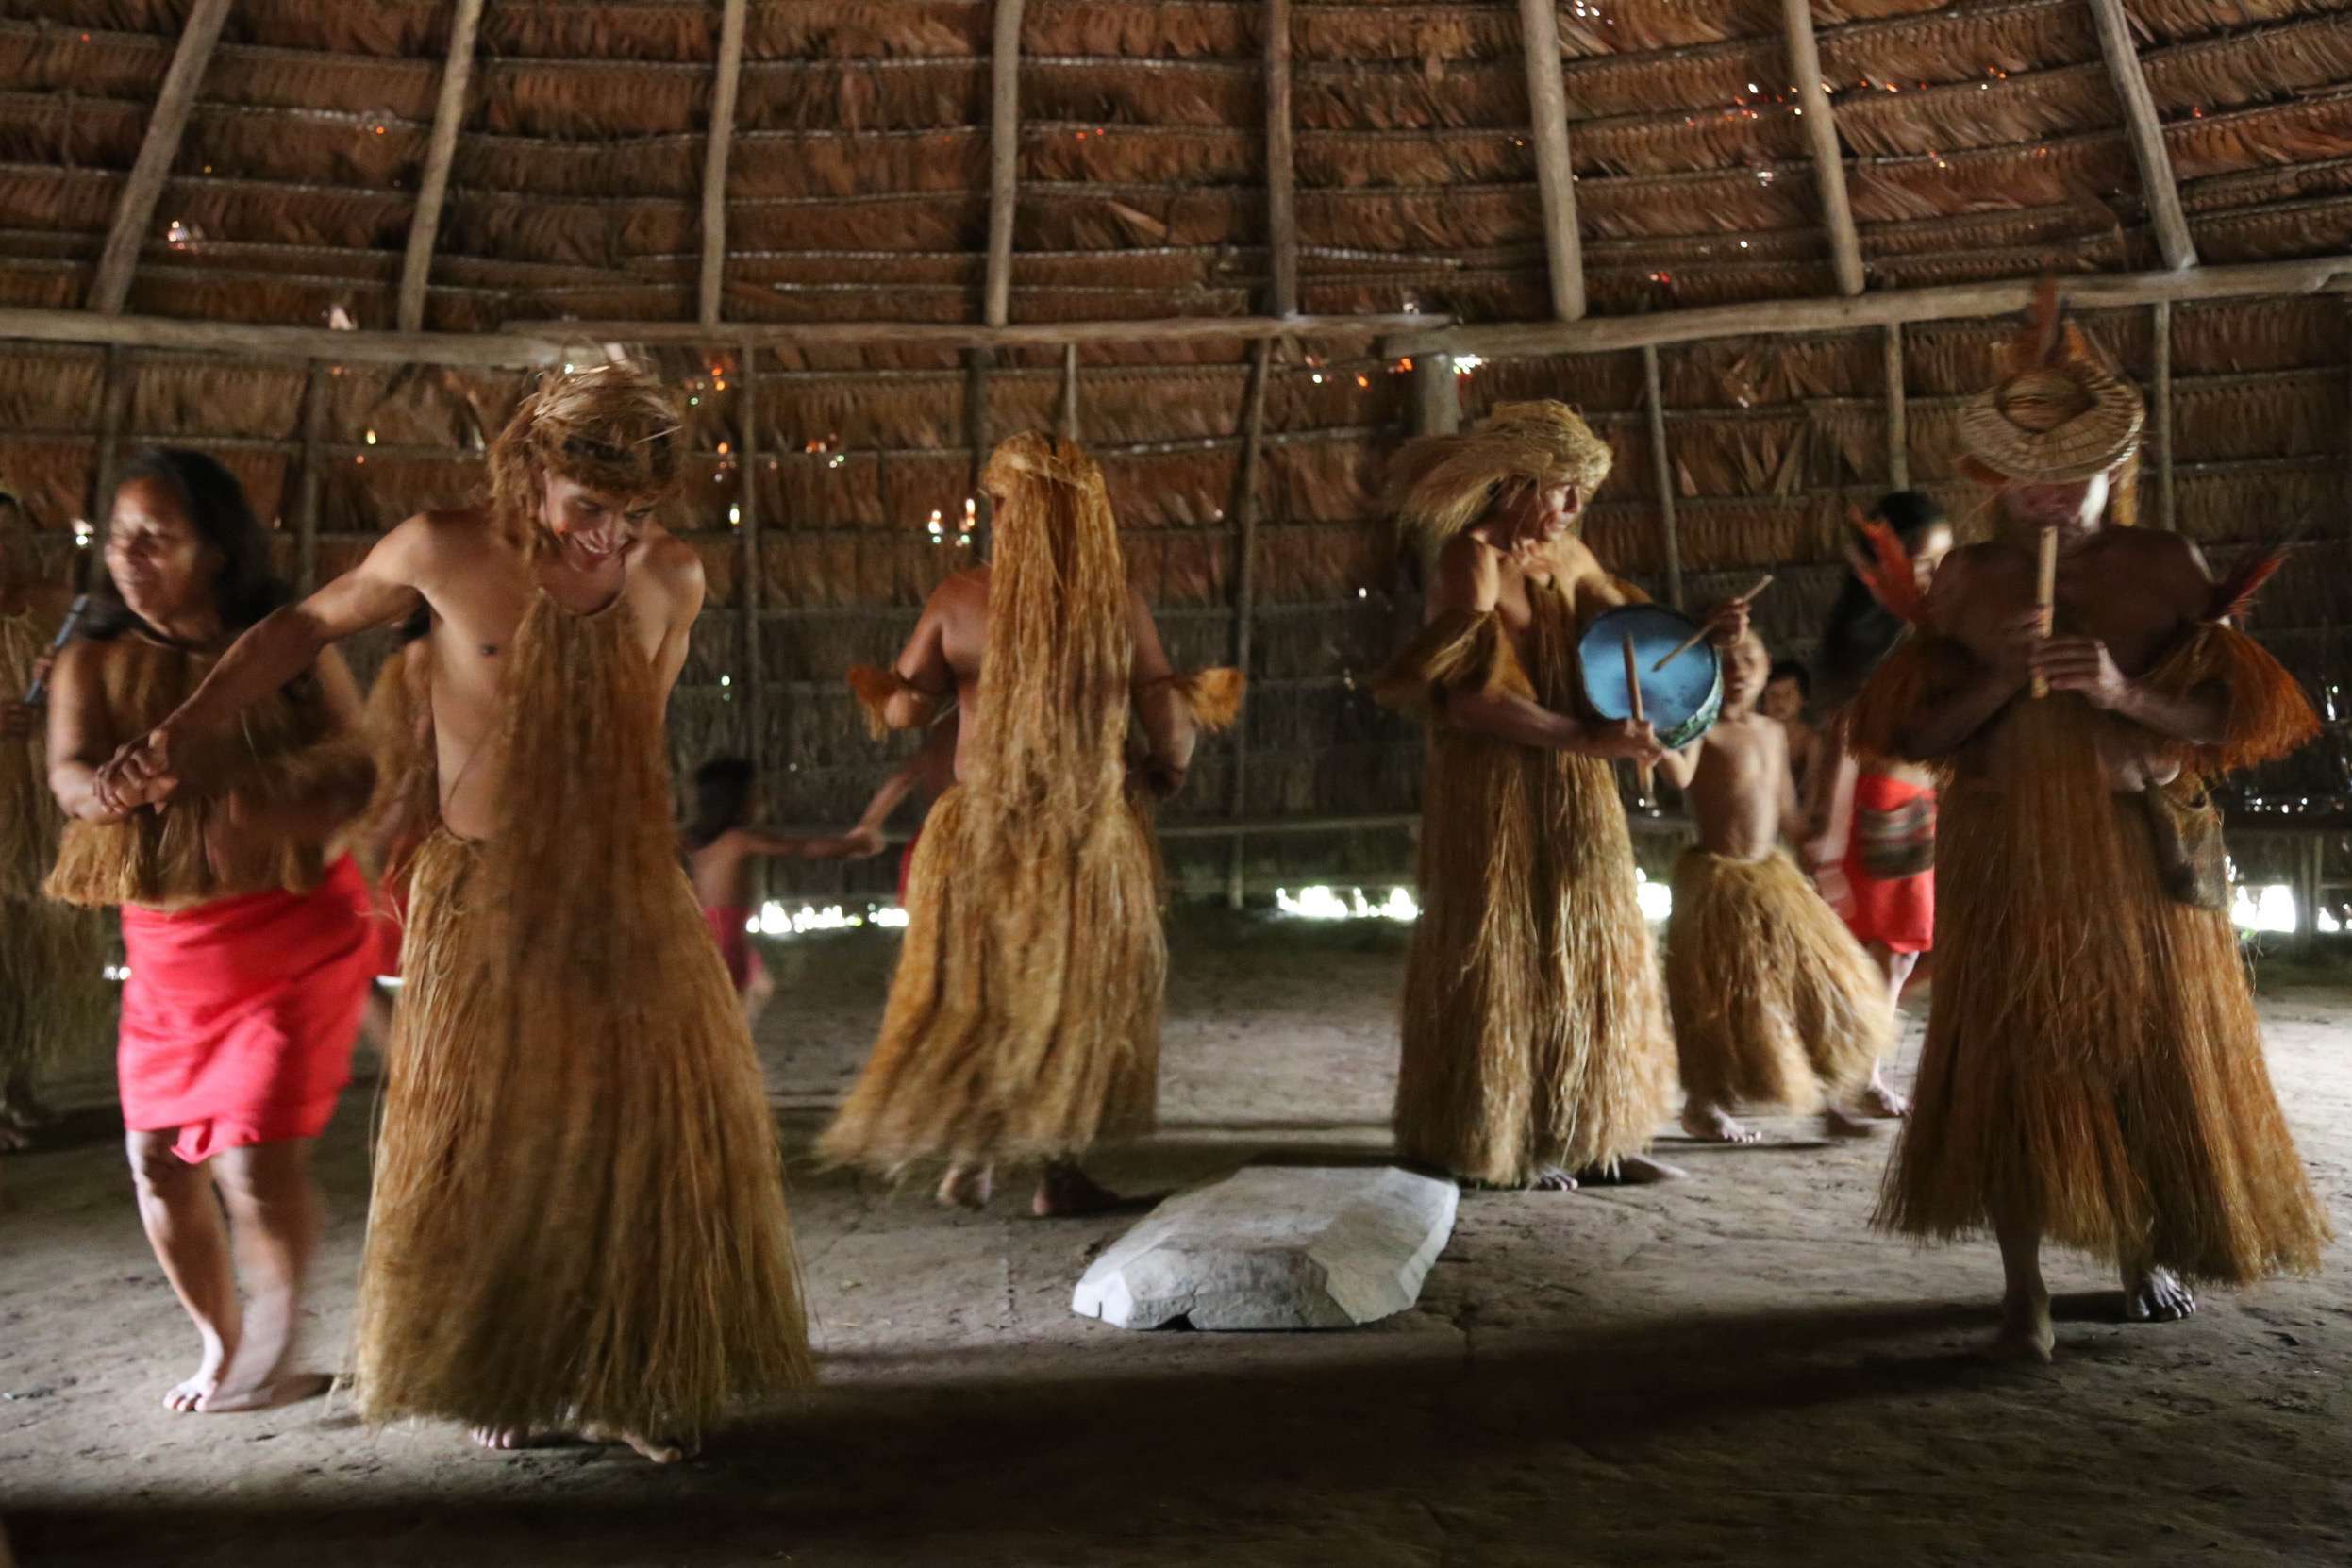 When tourists come for a visit, the members of the group gather in the main hut and perform a few dances, sometimes inviting the tourists to join them.